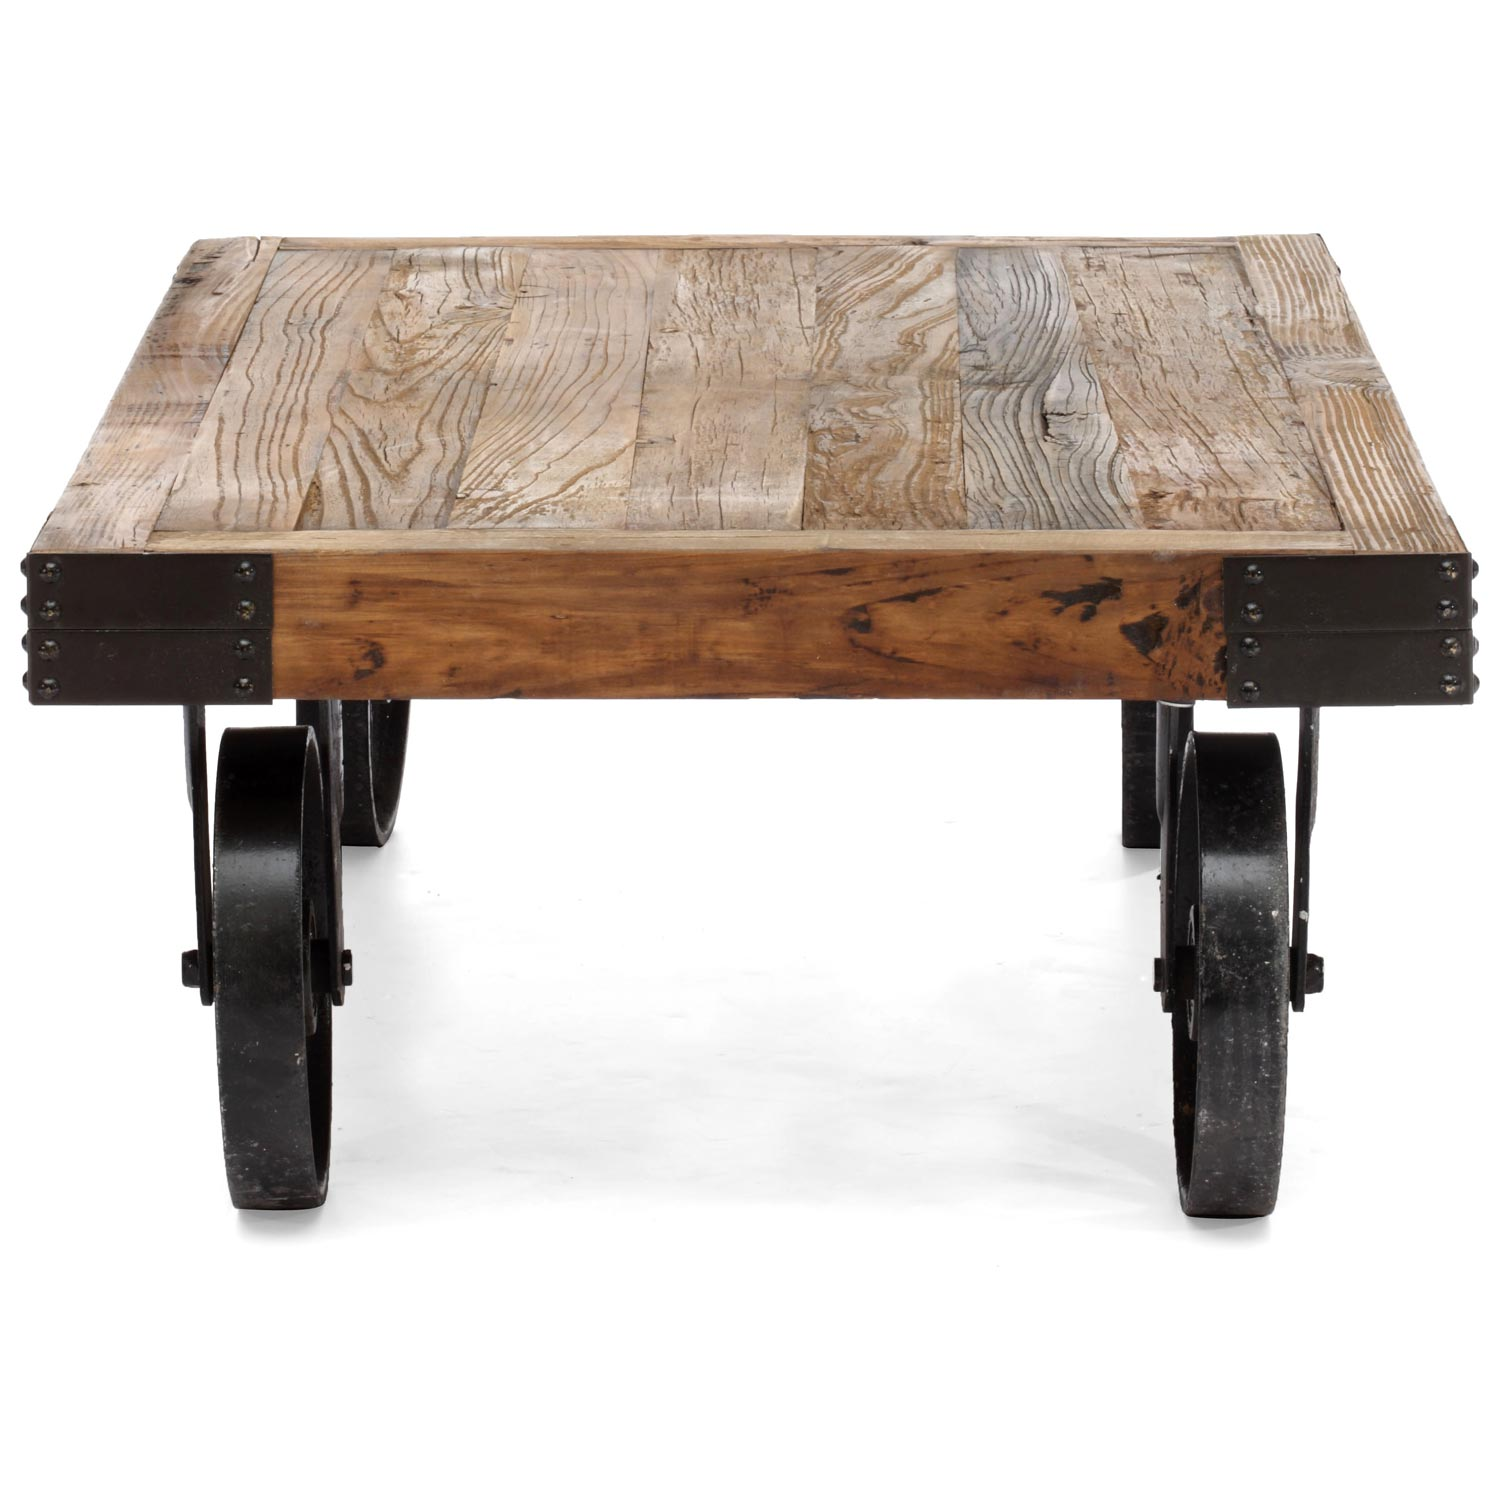 Barbary Coast Coffee Table - Antique Metal Wheels, Wood Top : DCG Stores